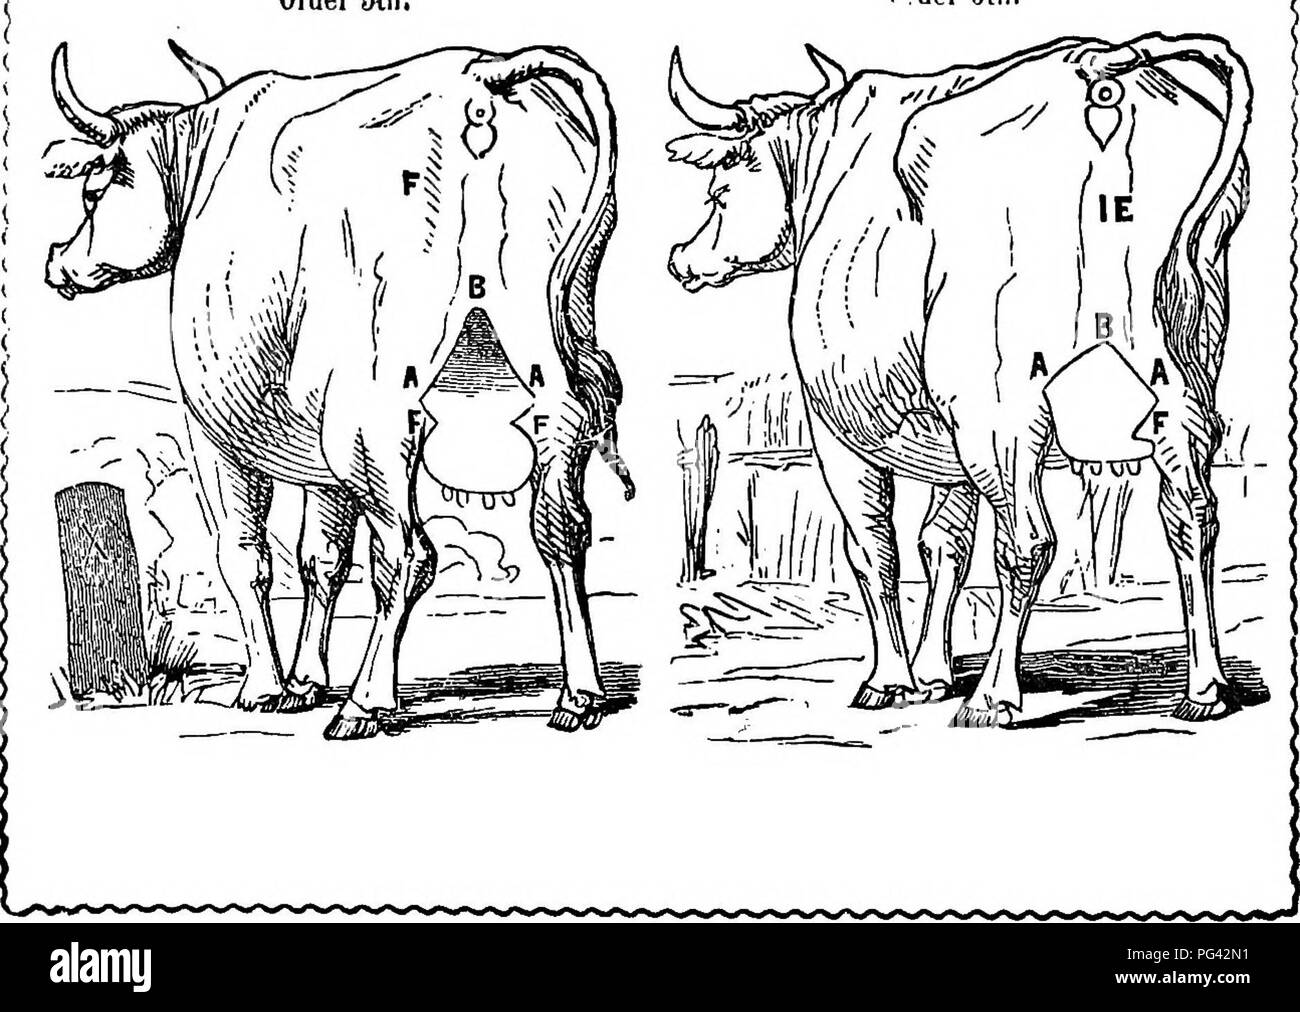 . A treatise on milch cows, whereby the quality and quantity of milk which any cow will give may be accurately determined by observing natural marks or external indications alone; the length of time she will continue to give milk, &c. Cows; Milk; 1862. Order 5th Older Gth.. Please note that these images are extracted from scanned page images that may have been digitally enhanced for readability - coloration and appearance of these illustrations may not perfectly resemble the original work.. Gue?non, Franc?ois, 1796-1855; Skinner, John S. (John Stuart), 1788-1851; Trist, Nicholas Philip, 18 - Stock Image